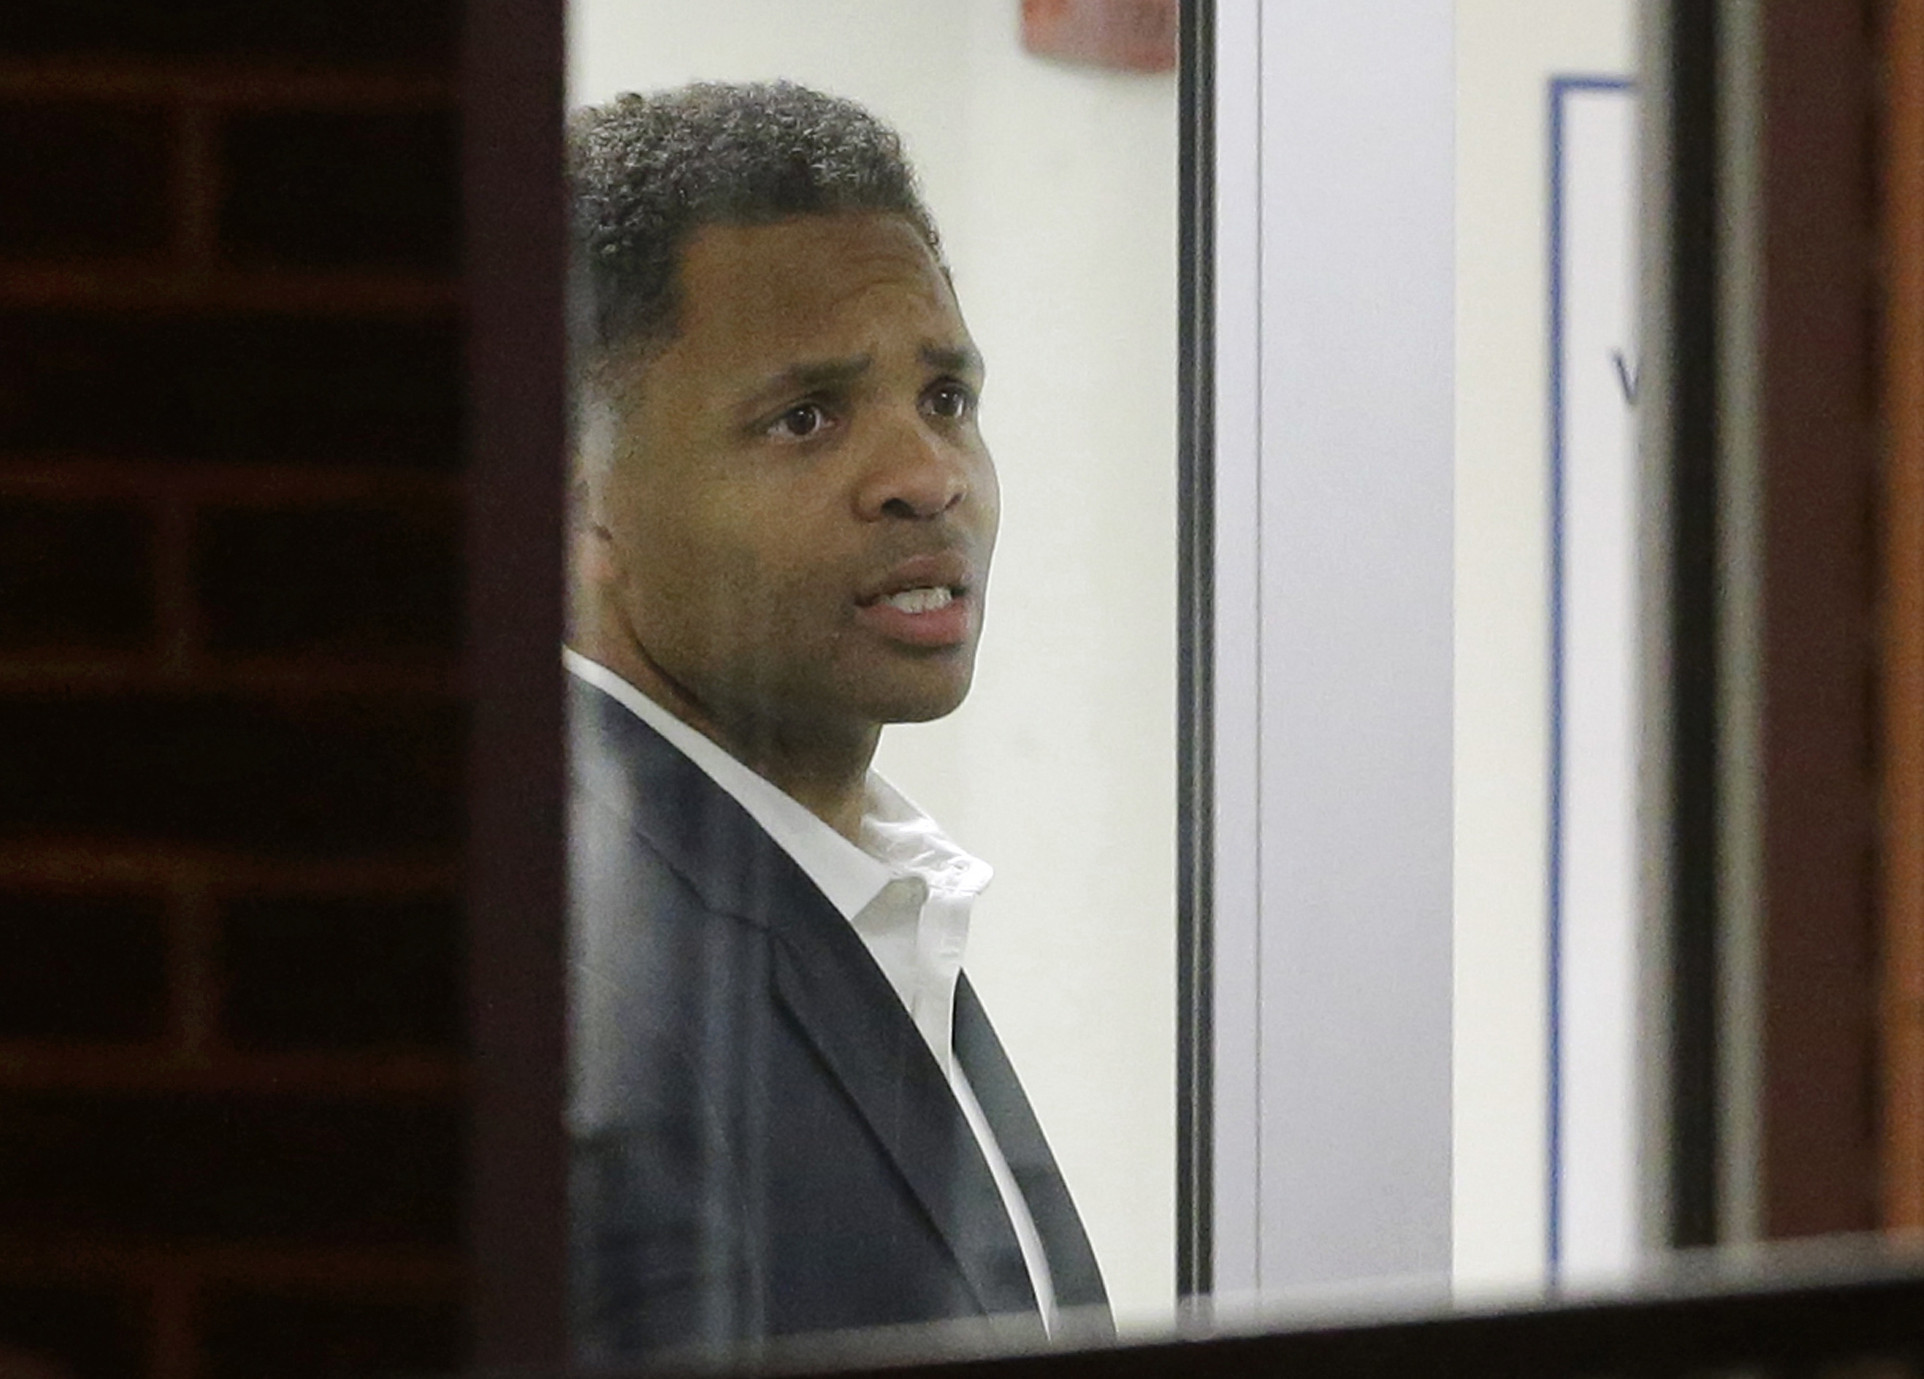 Jesse Jackson Jr. could go home this month